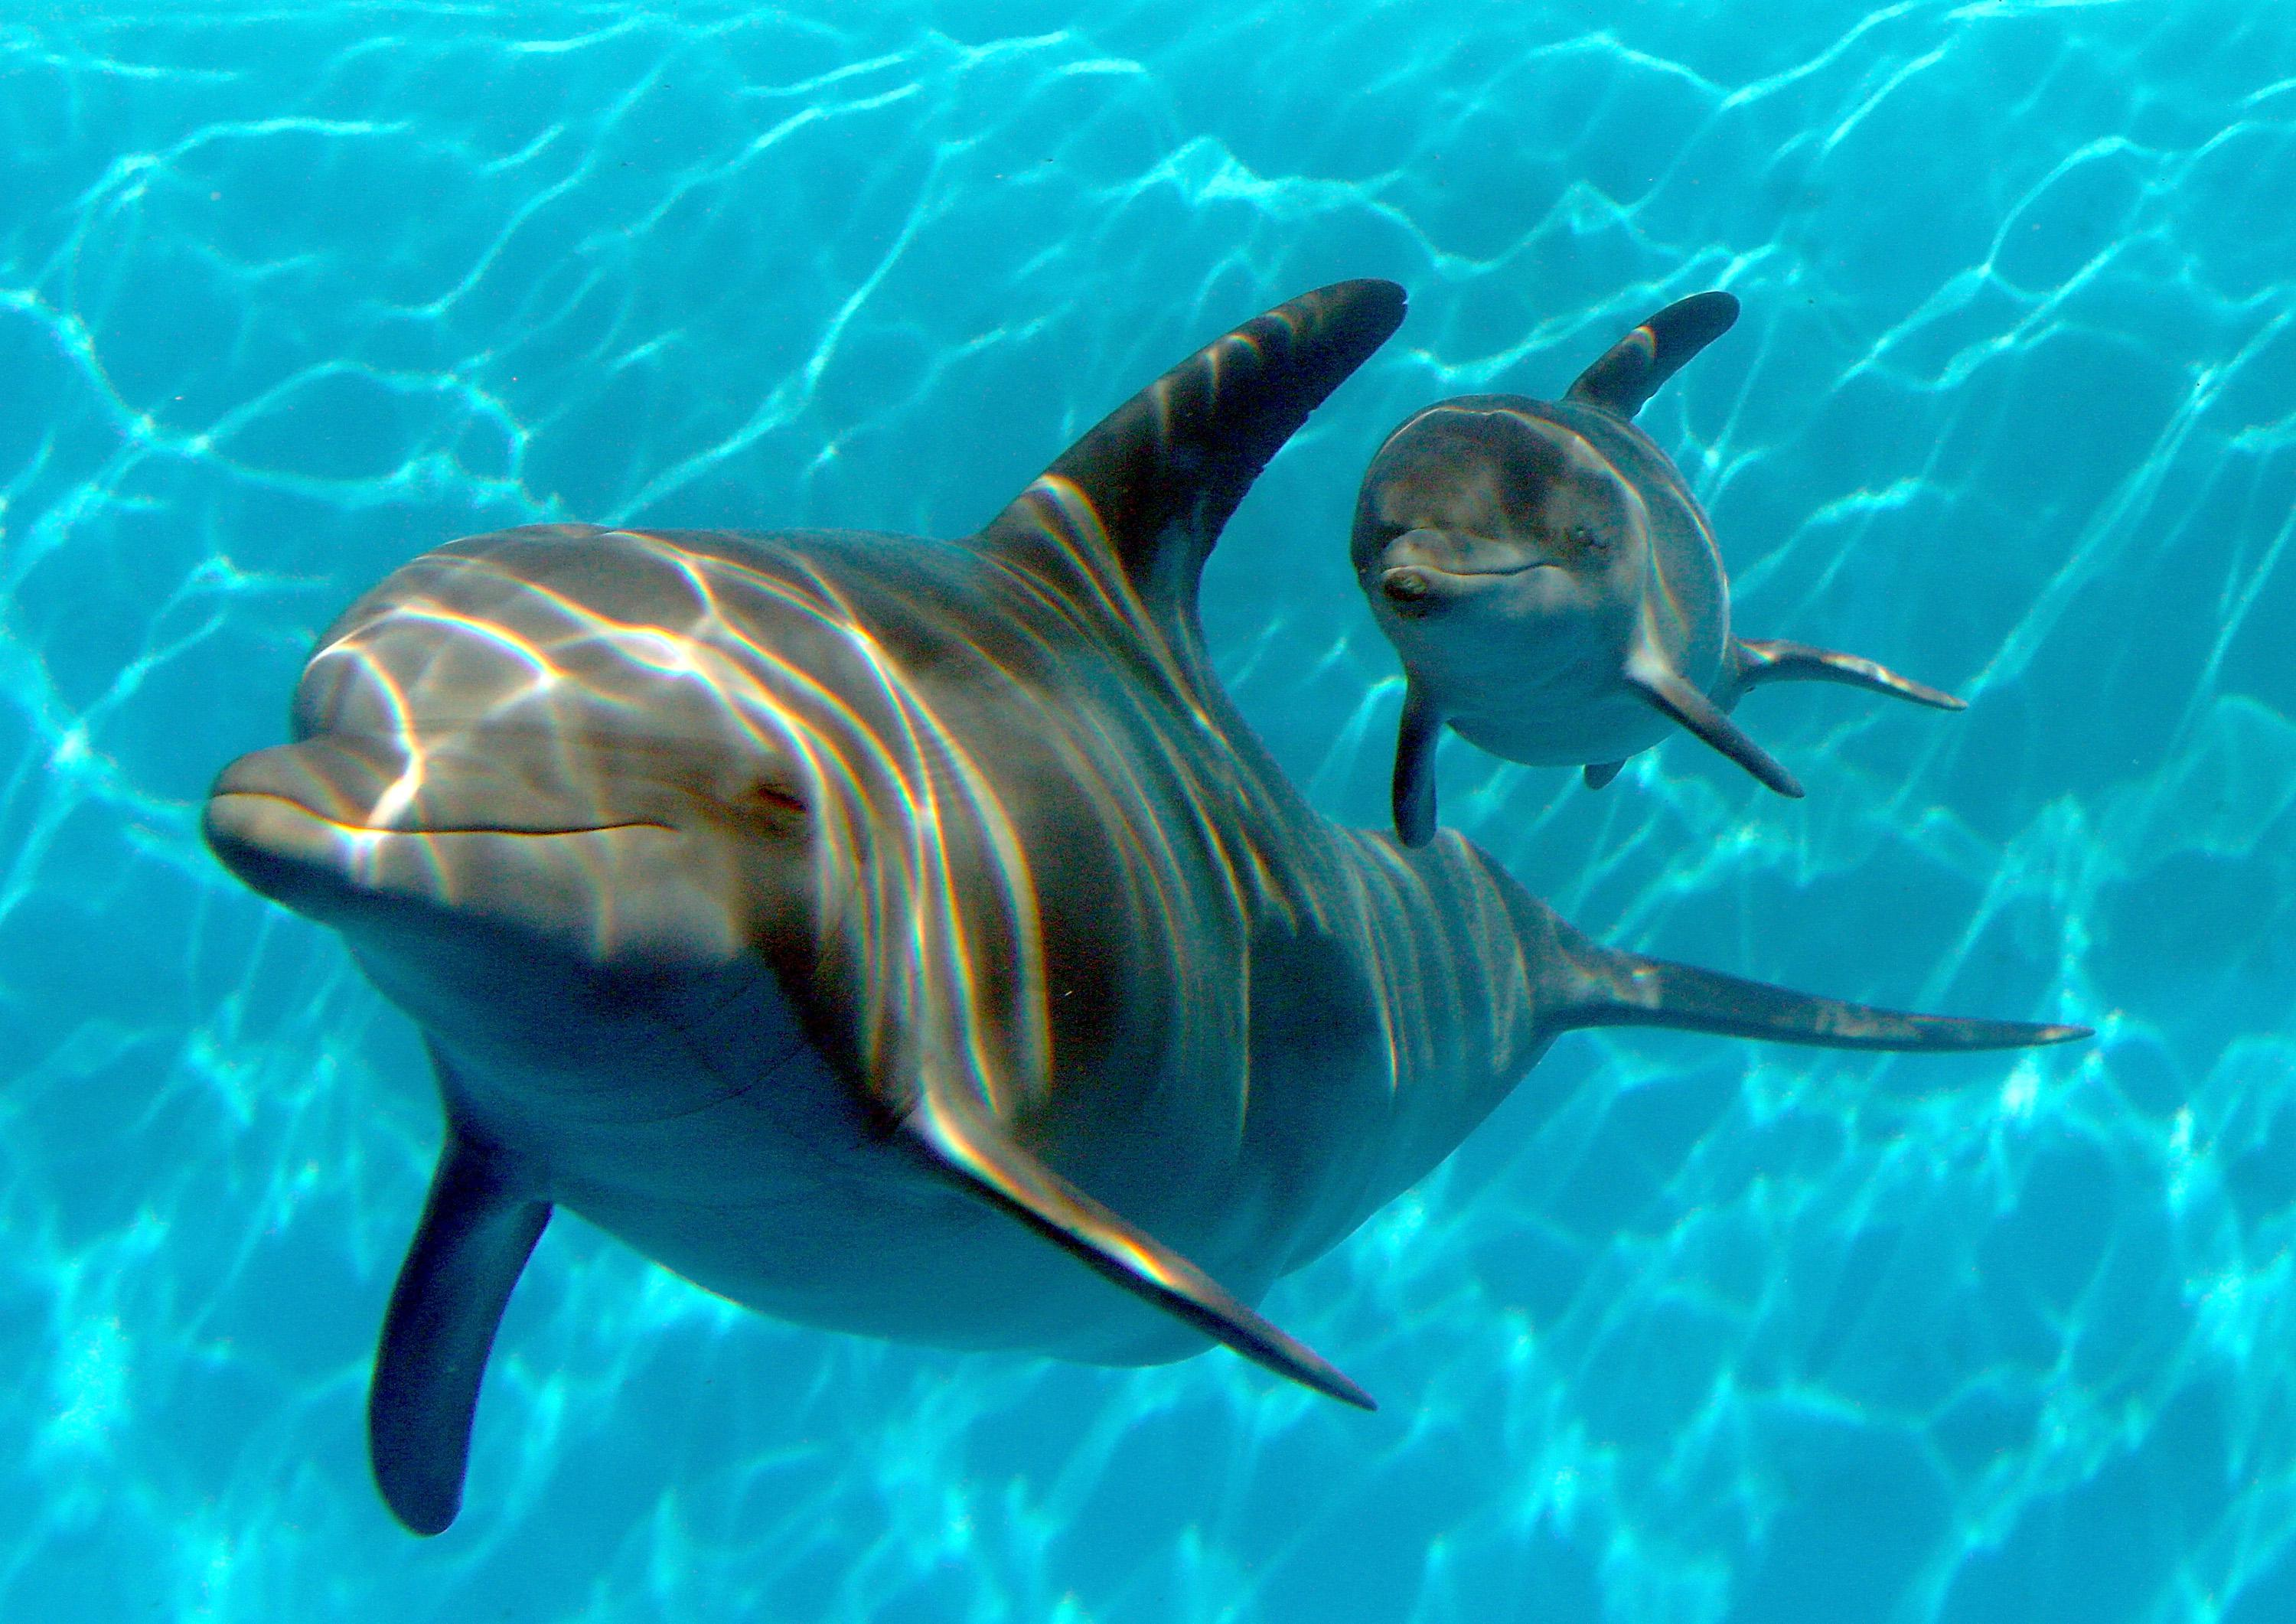 Two friendly-looking dolphins, a mother and calf, swimming toward the camera.